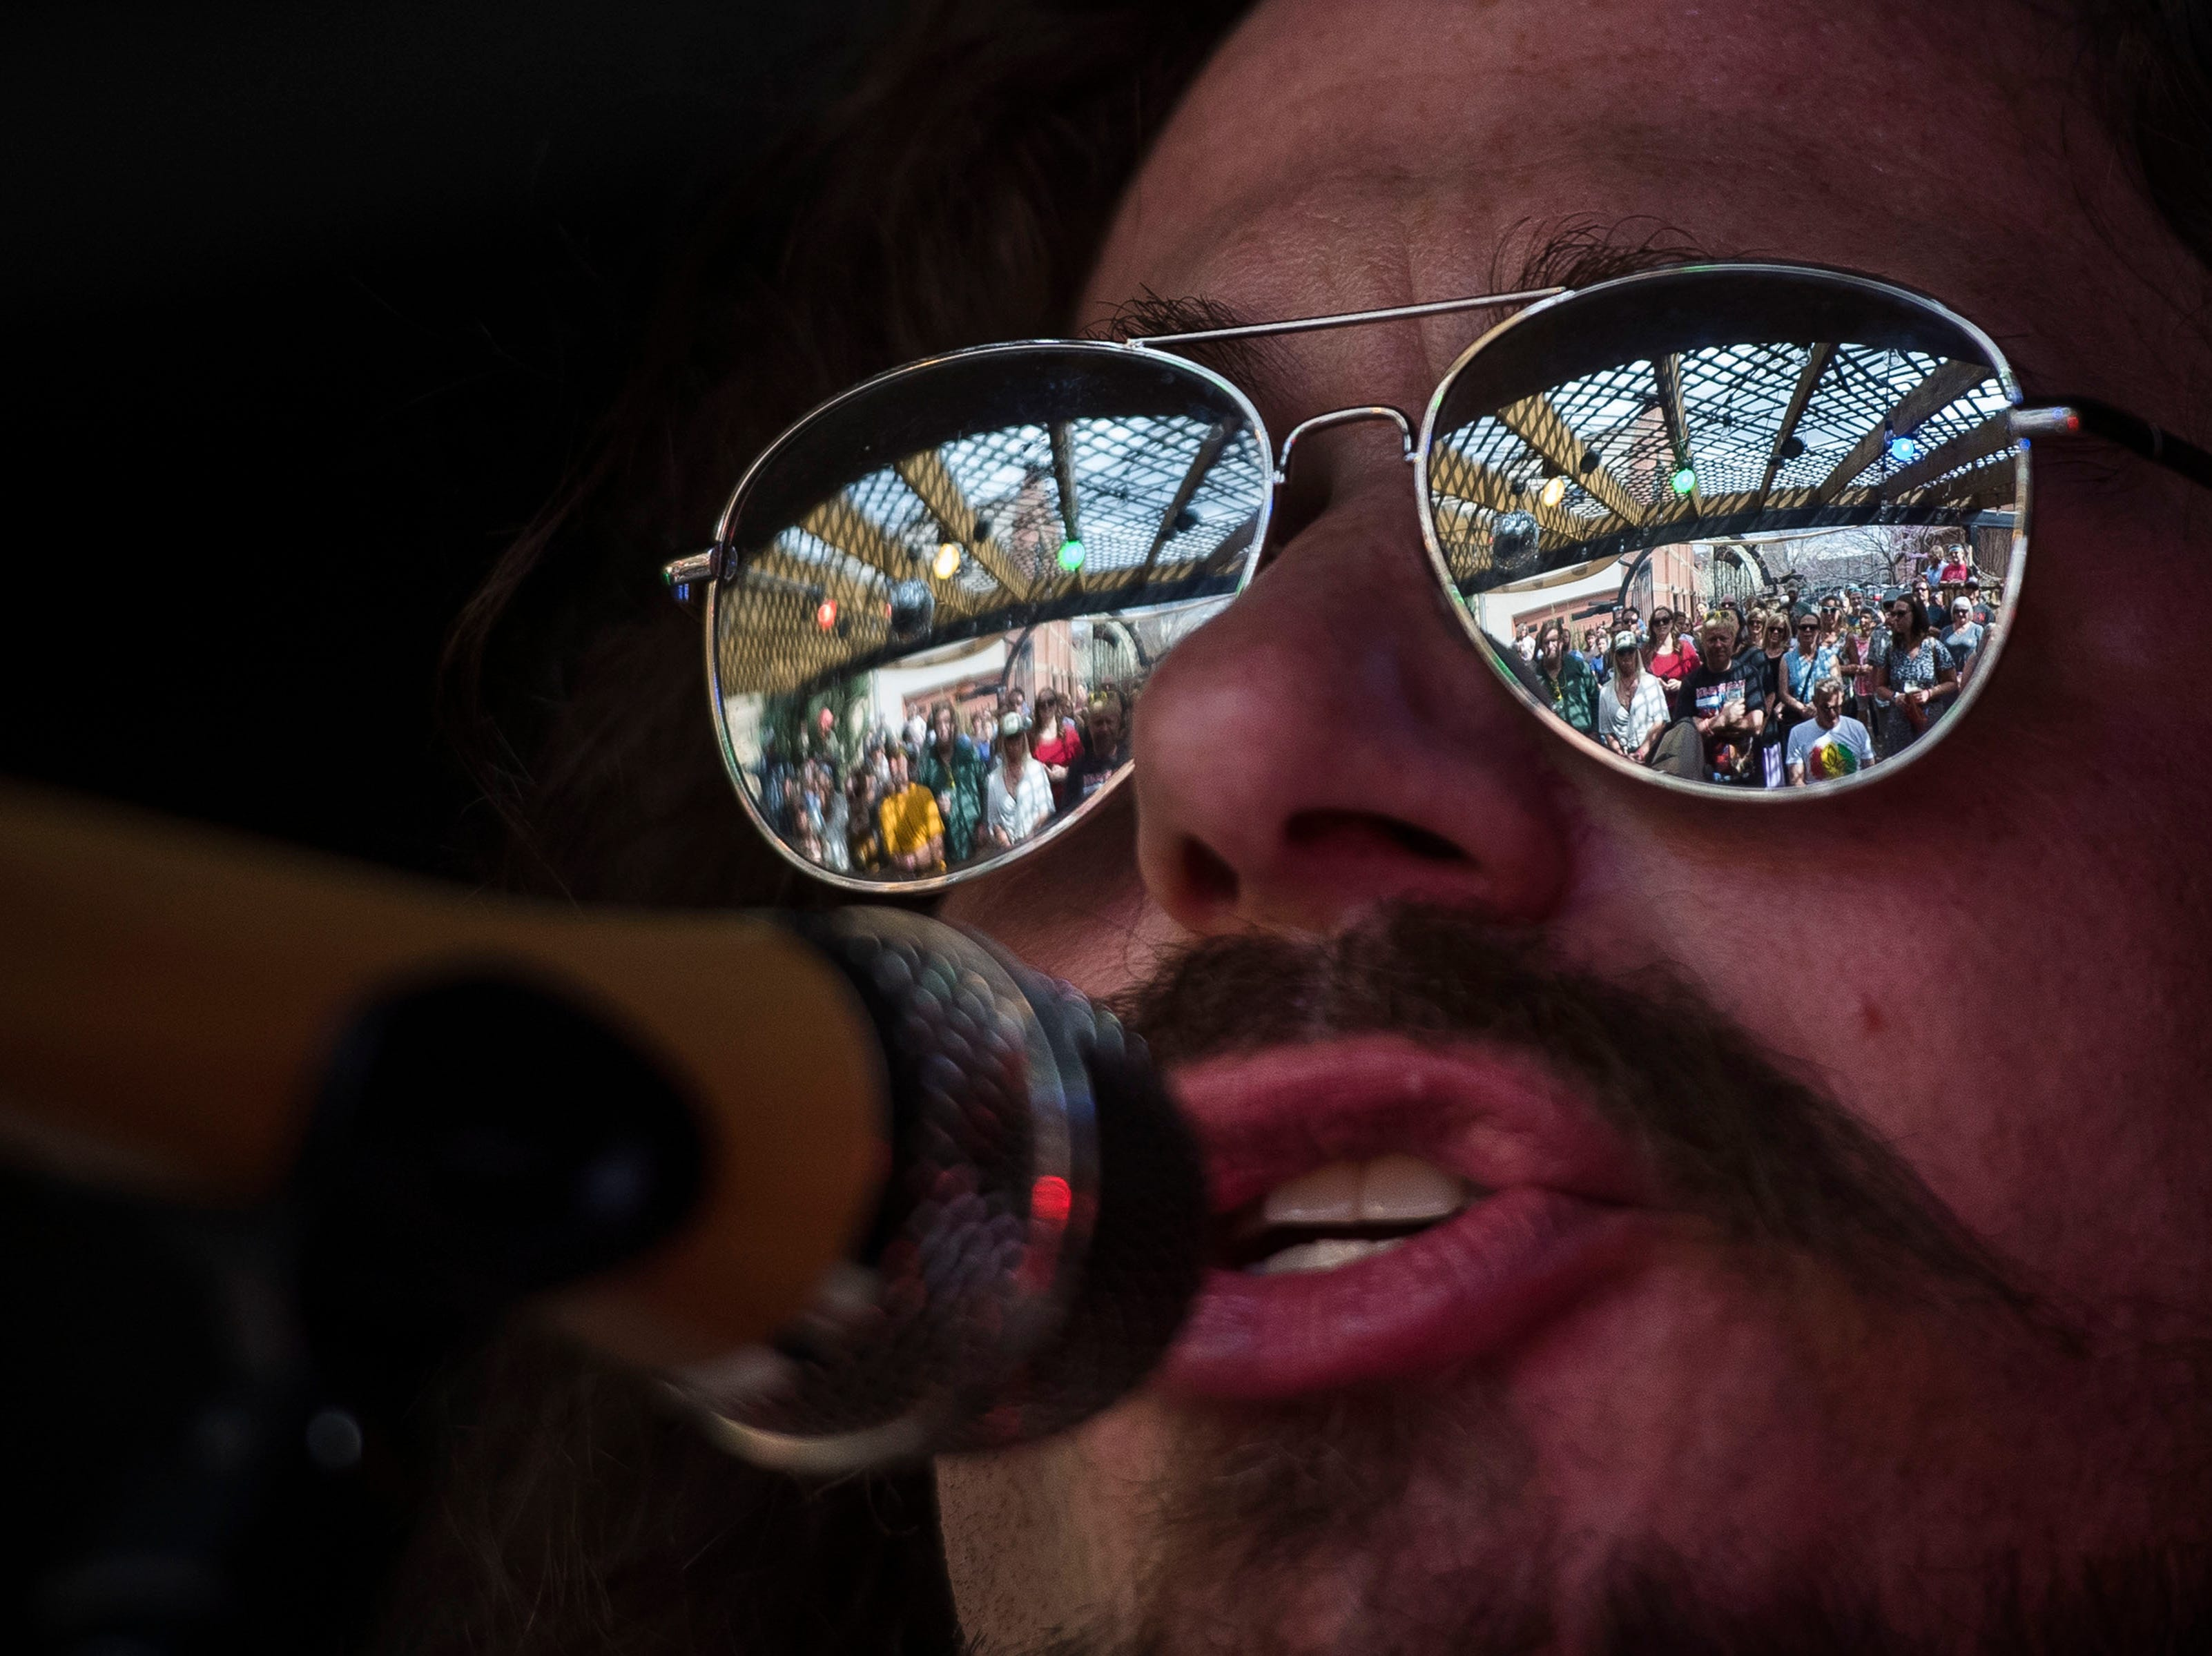 The crowd is reflected in Michael Kirkpartick's sunglasses as he performs at the Equinox Brewing back patio during the FoCoMX XI music festival on Friday, April 26, 2019, in Fort Collins, Colo.